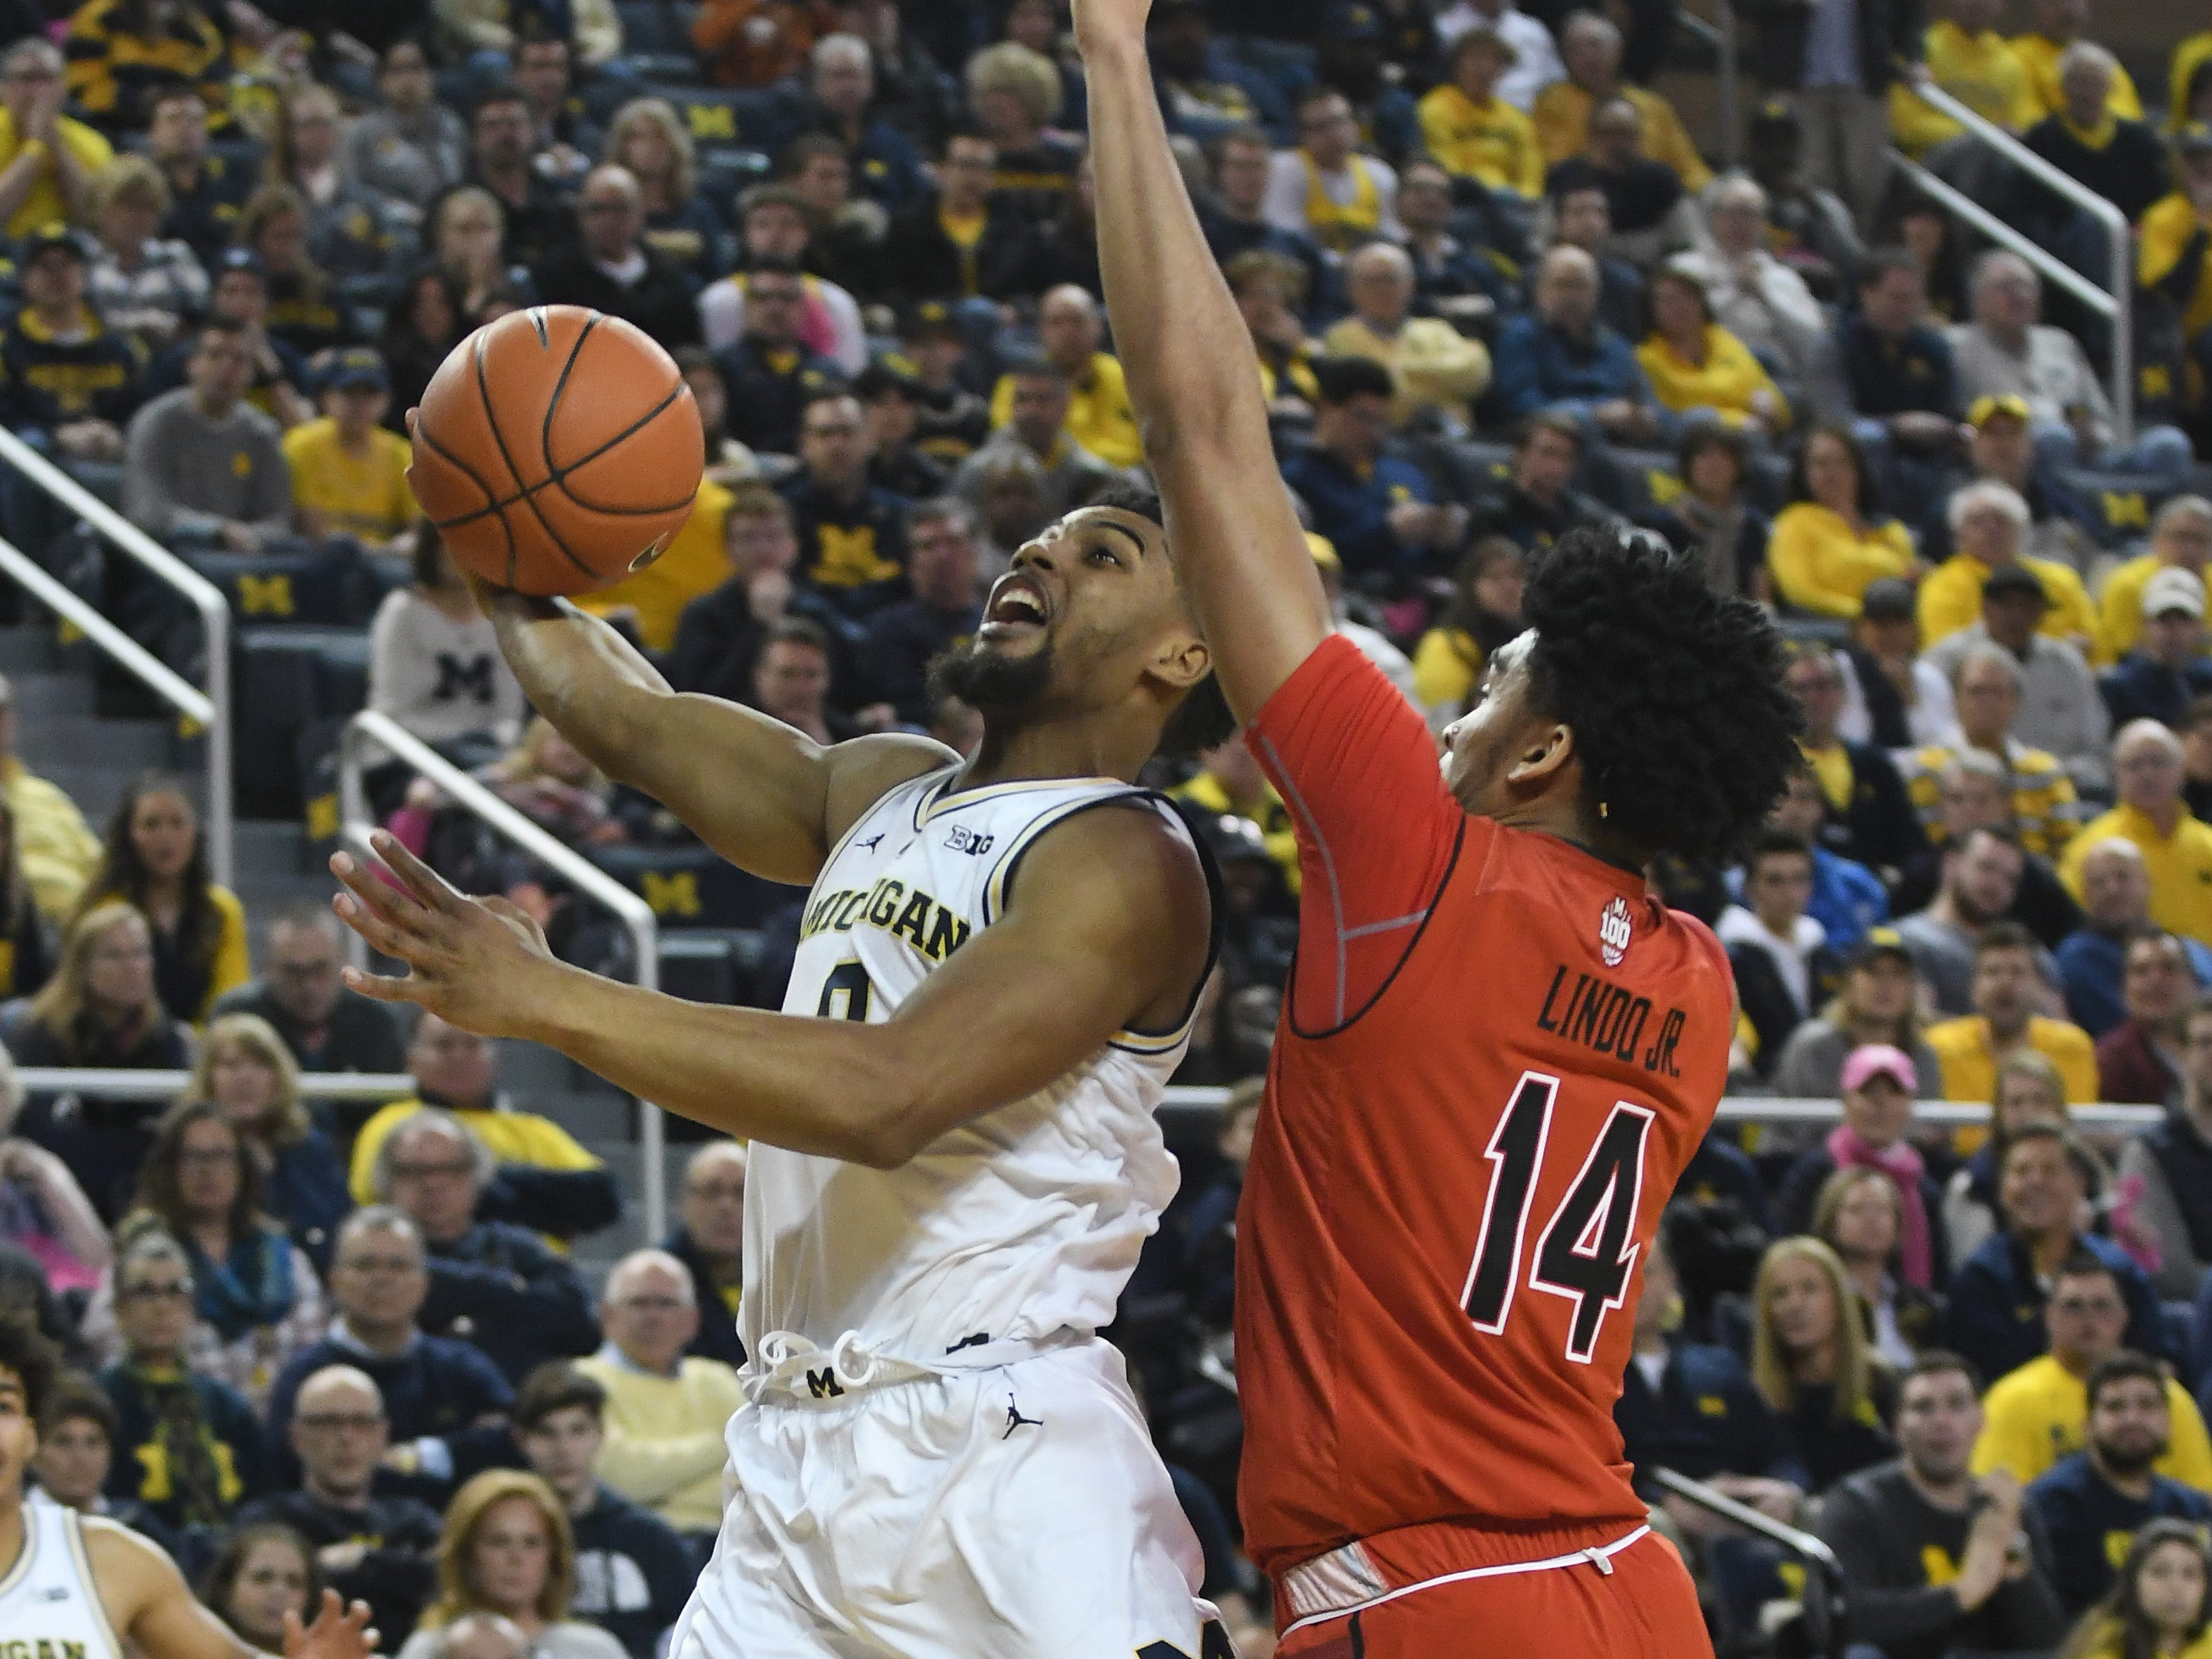 Michigan's David DeJulius drives to the basket against Maryland's Ricky Linda Jr. in the first half.